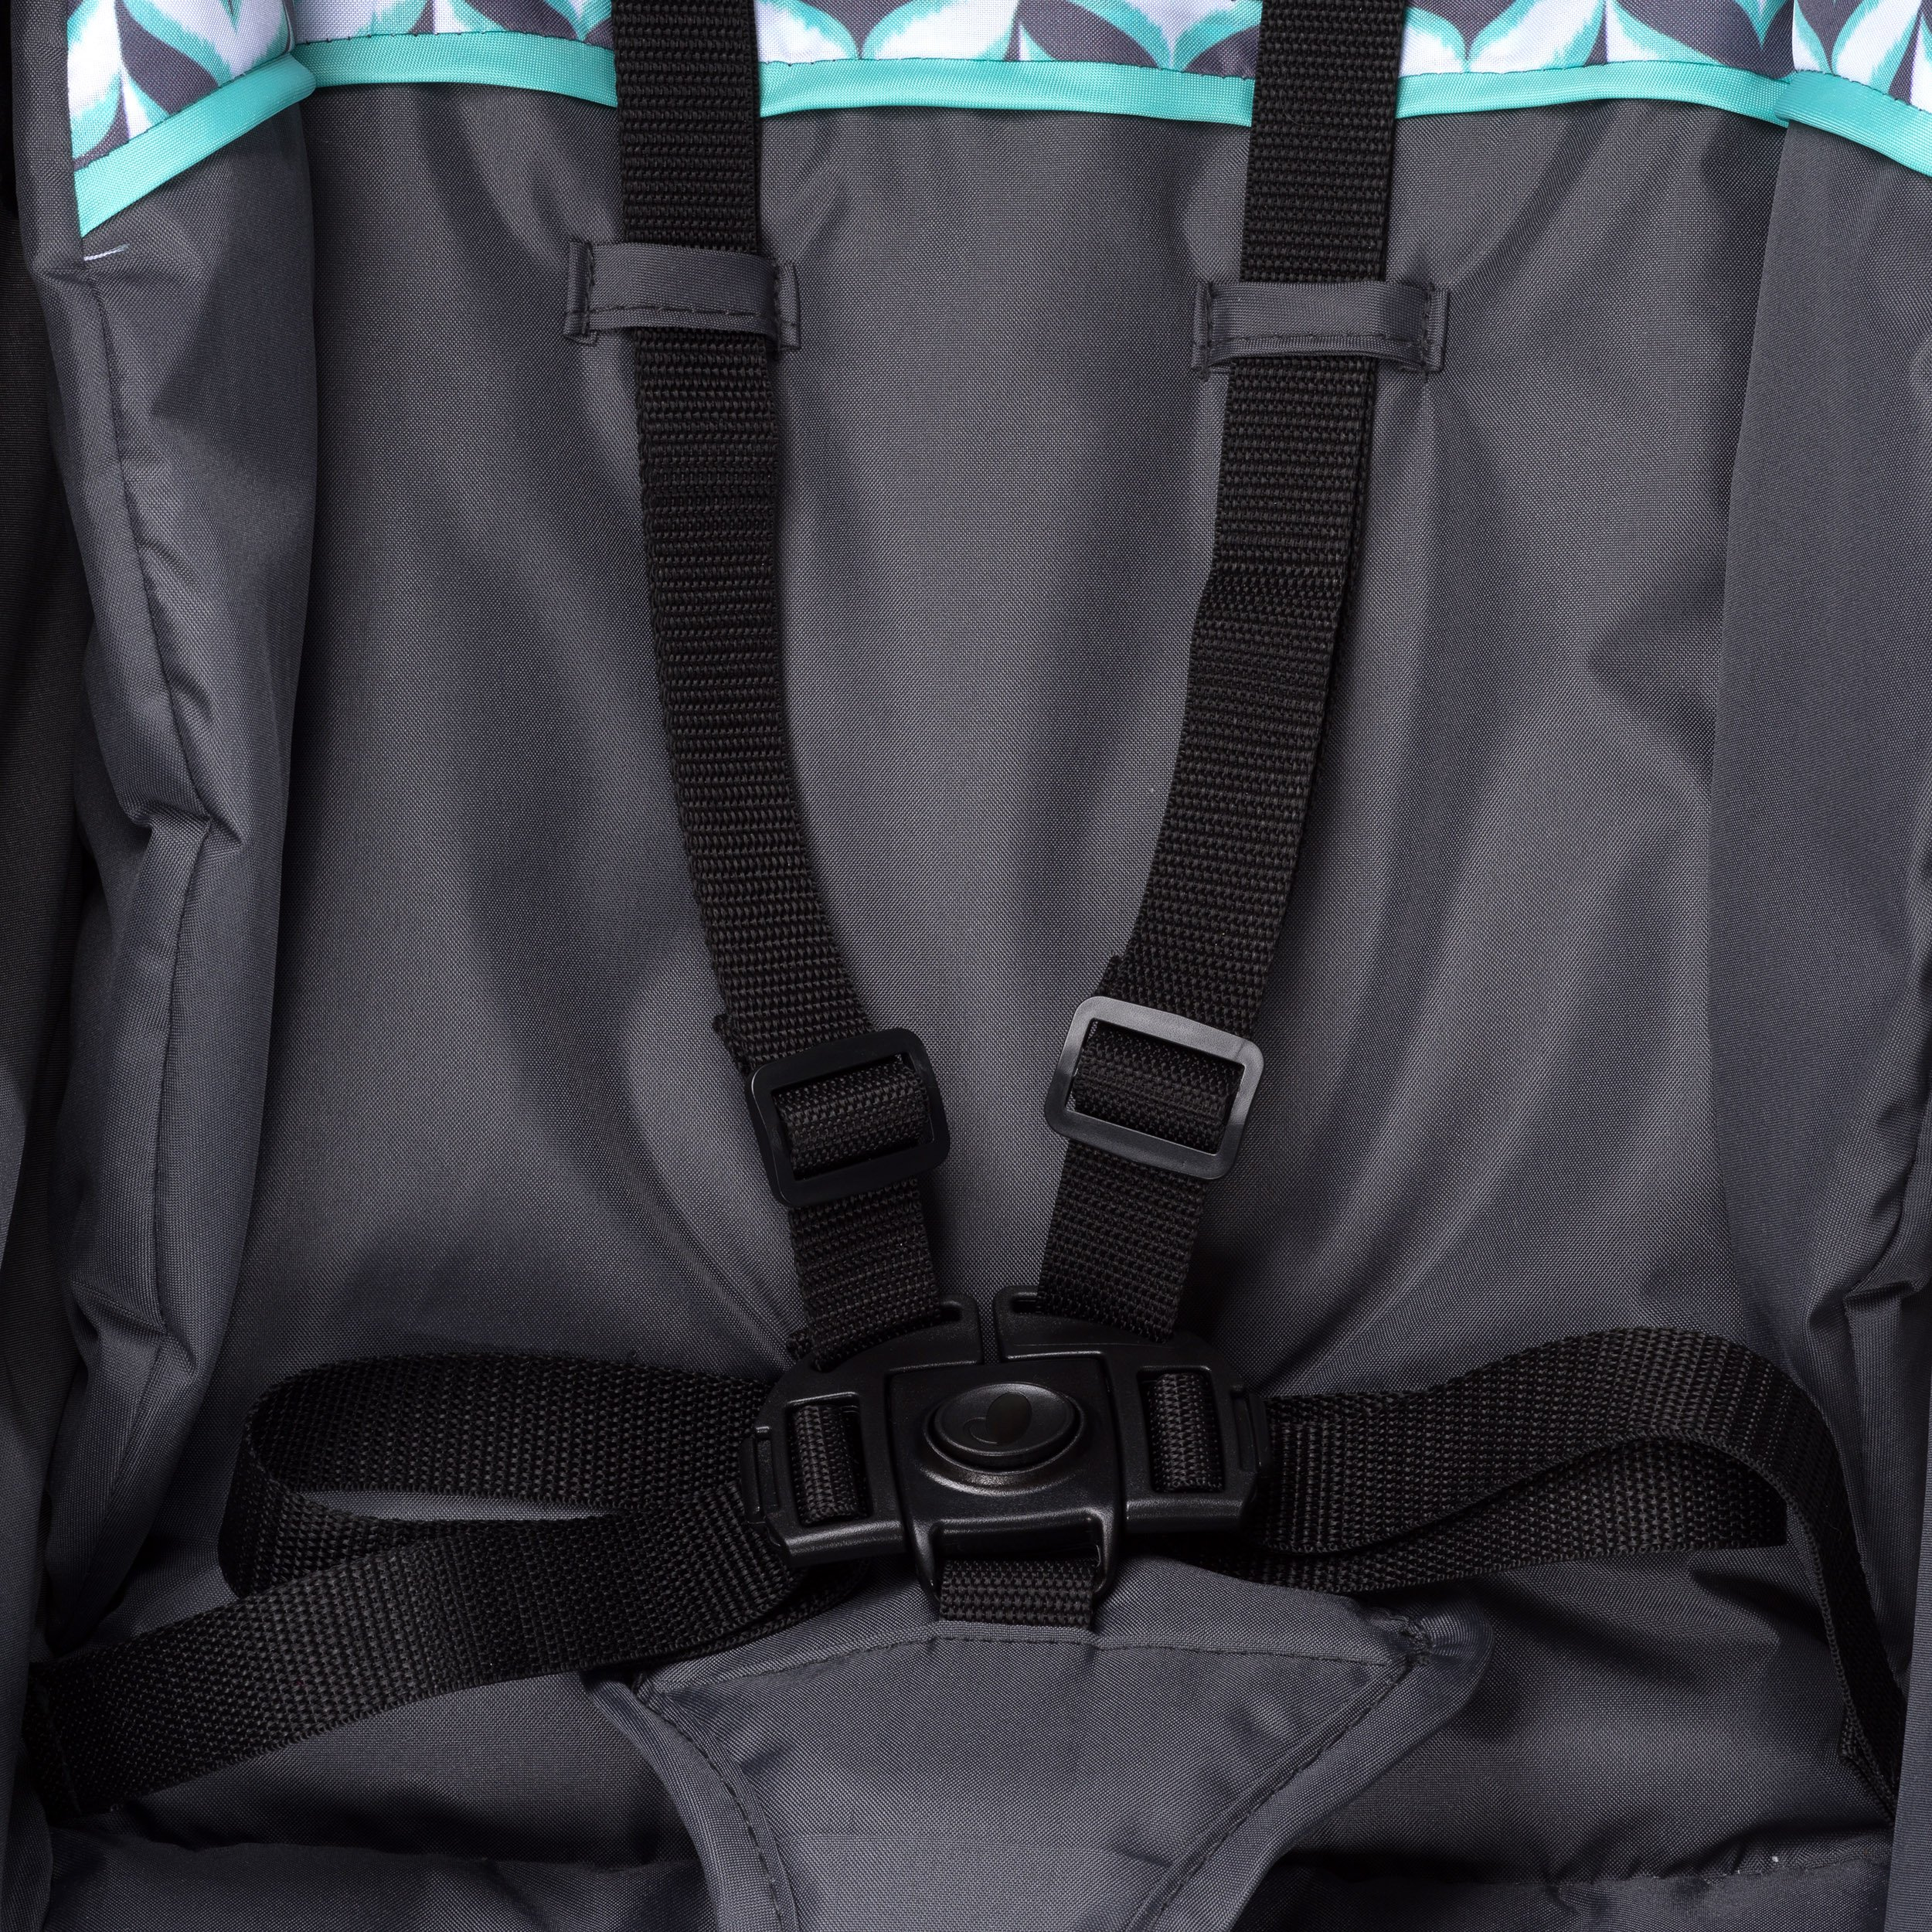 Evenflo Vive Travel System with Embrace, Spearmint Spree by Evenflo (Image #12)